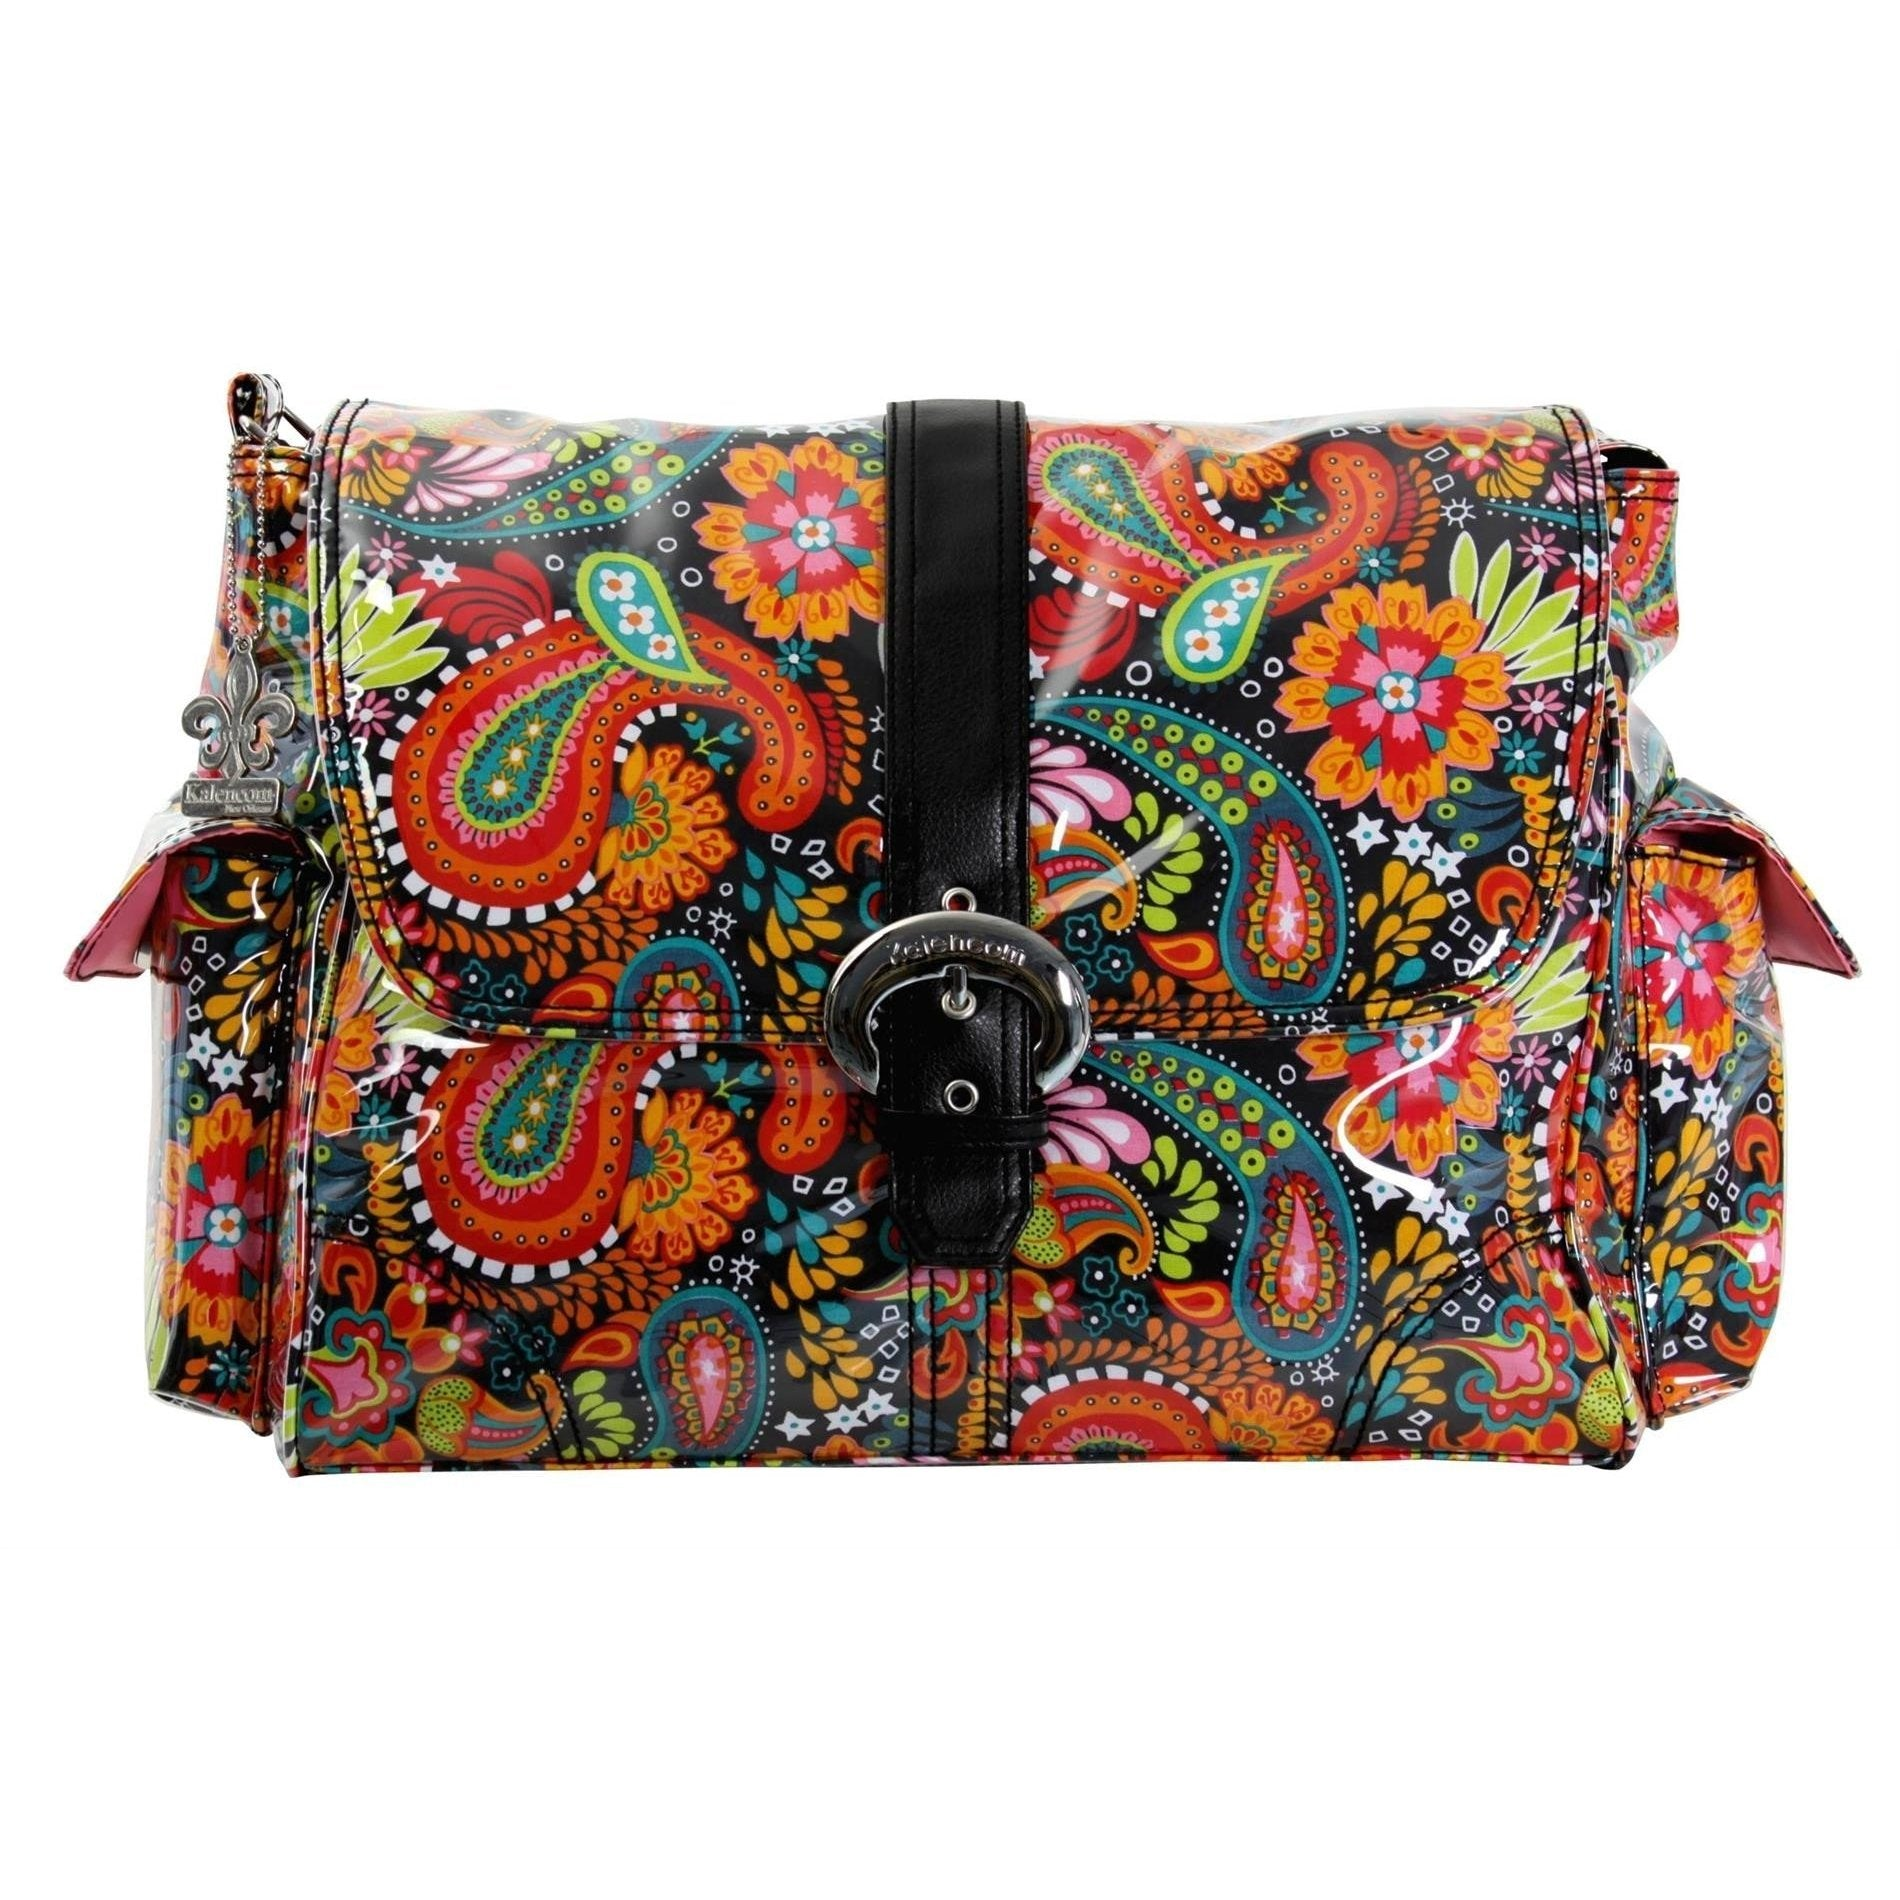 Mango Paisley Laminated Buckle Diaper Bag | Style 2960 - Kalencom-Diaper Bags-Jack and Jill Boutique